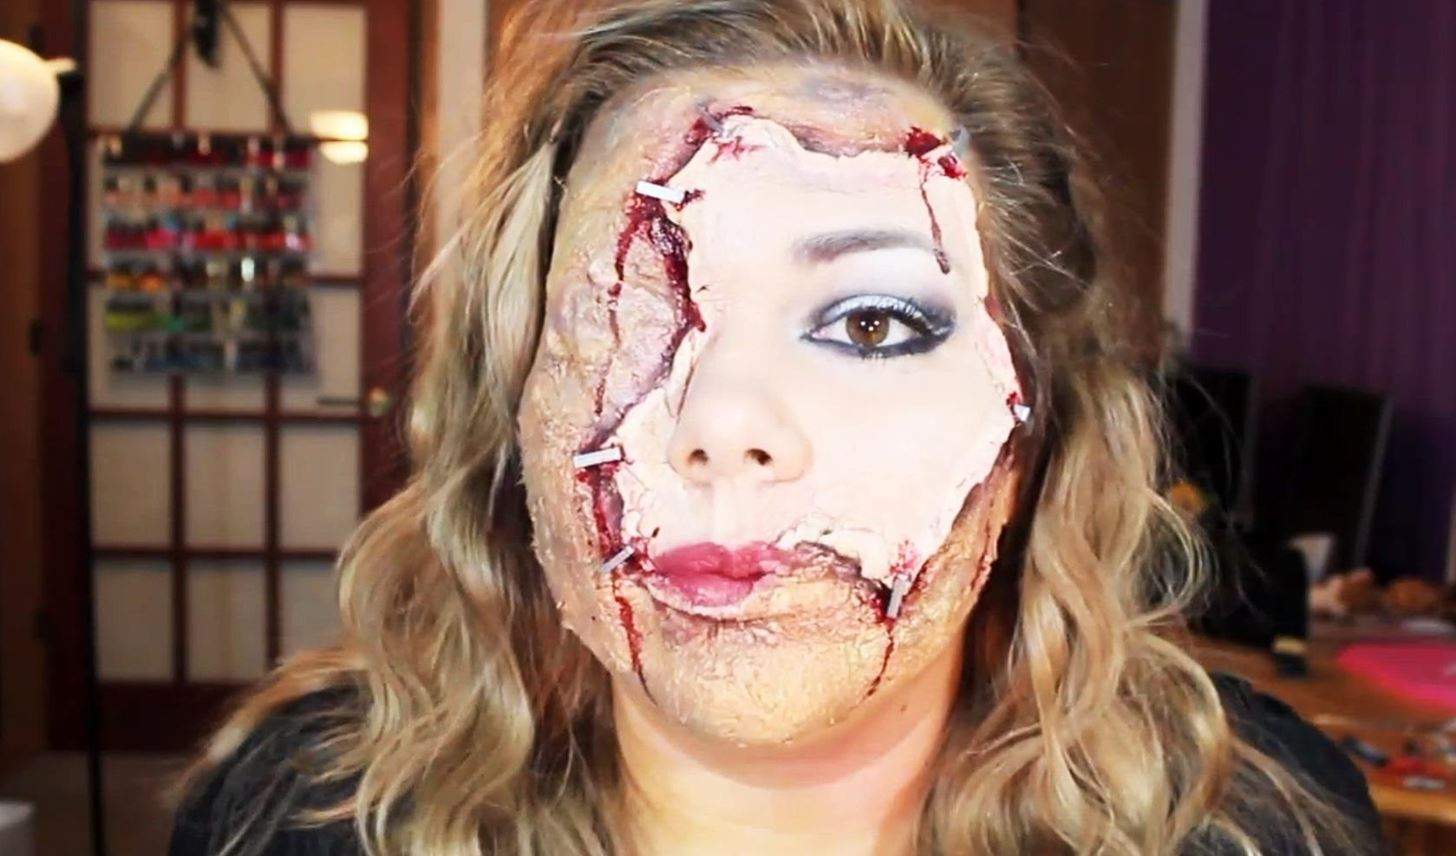 Horrifying halloween makeup diy scarred face with flayed human horrifying halloween makeup diy scarred face with flayed human skin mask halloween ideas wonderhowto solutioingenieria